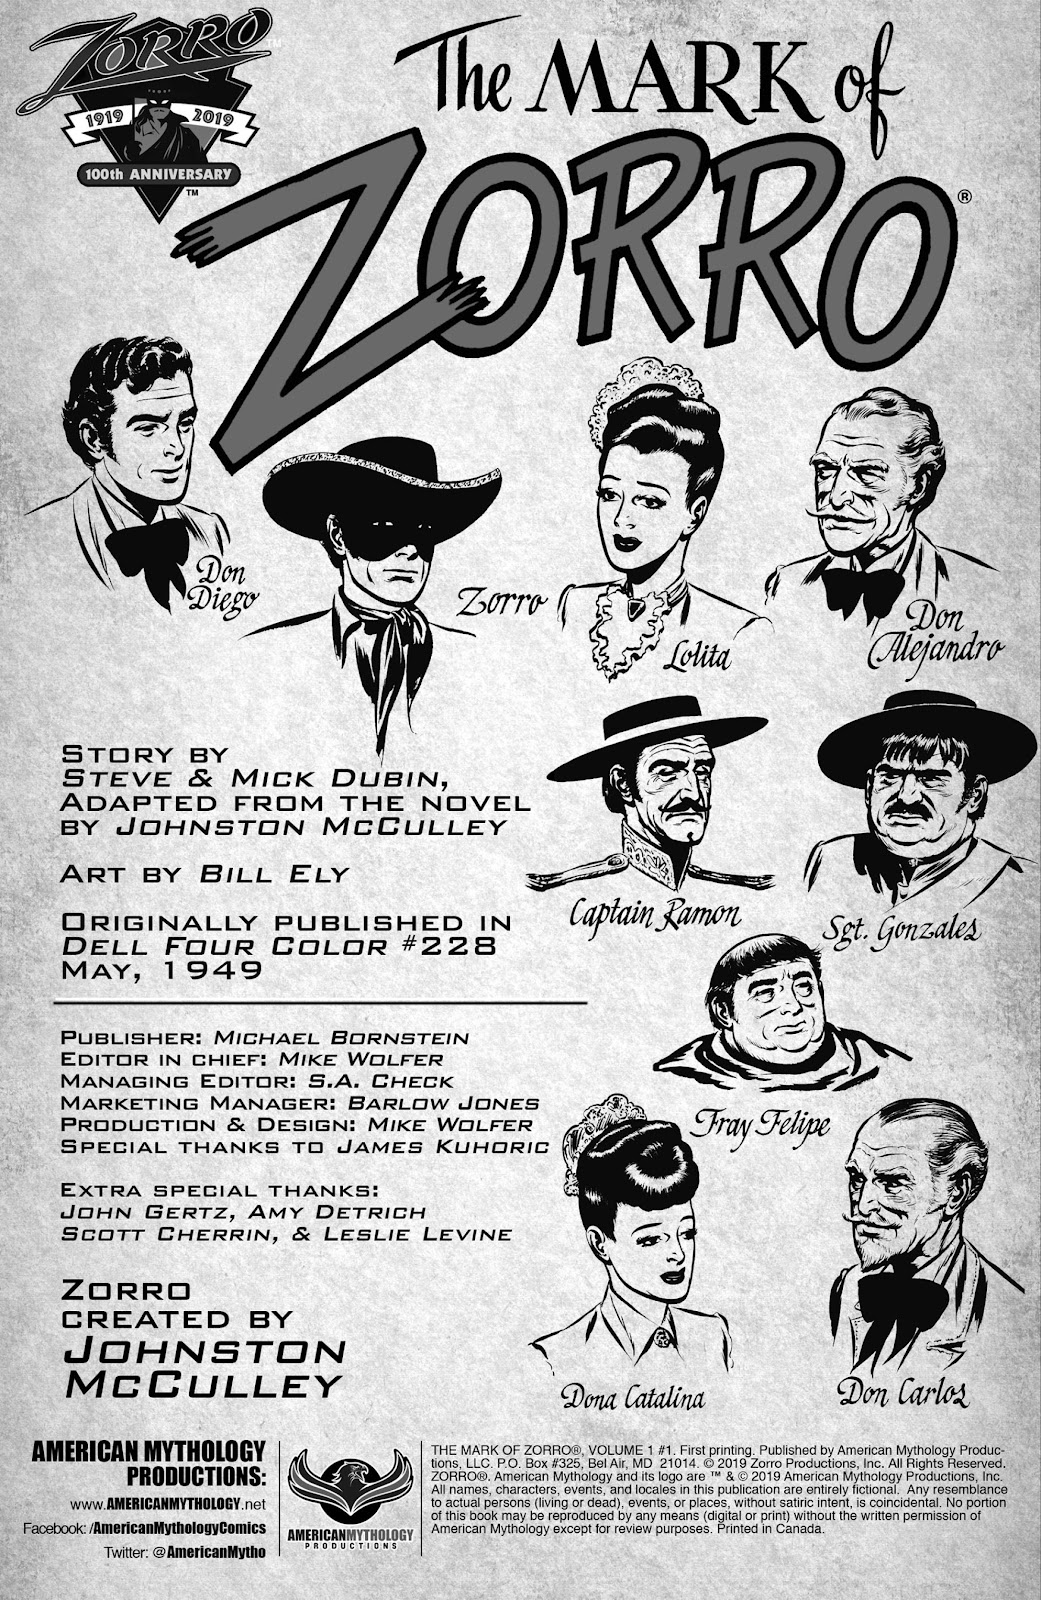 Read online AM Archives: The Mark of Zorro #1 1949 Dell Edition comic -  Issue #1 1949 Dell Edition Full - 2